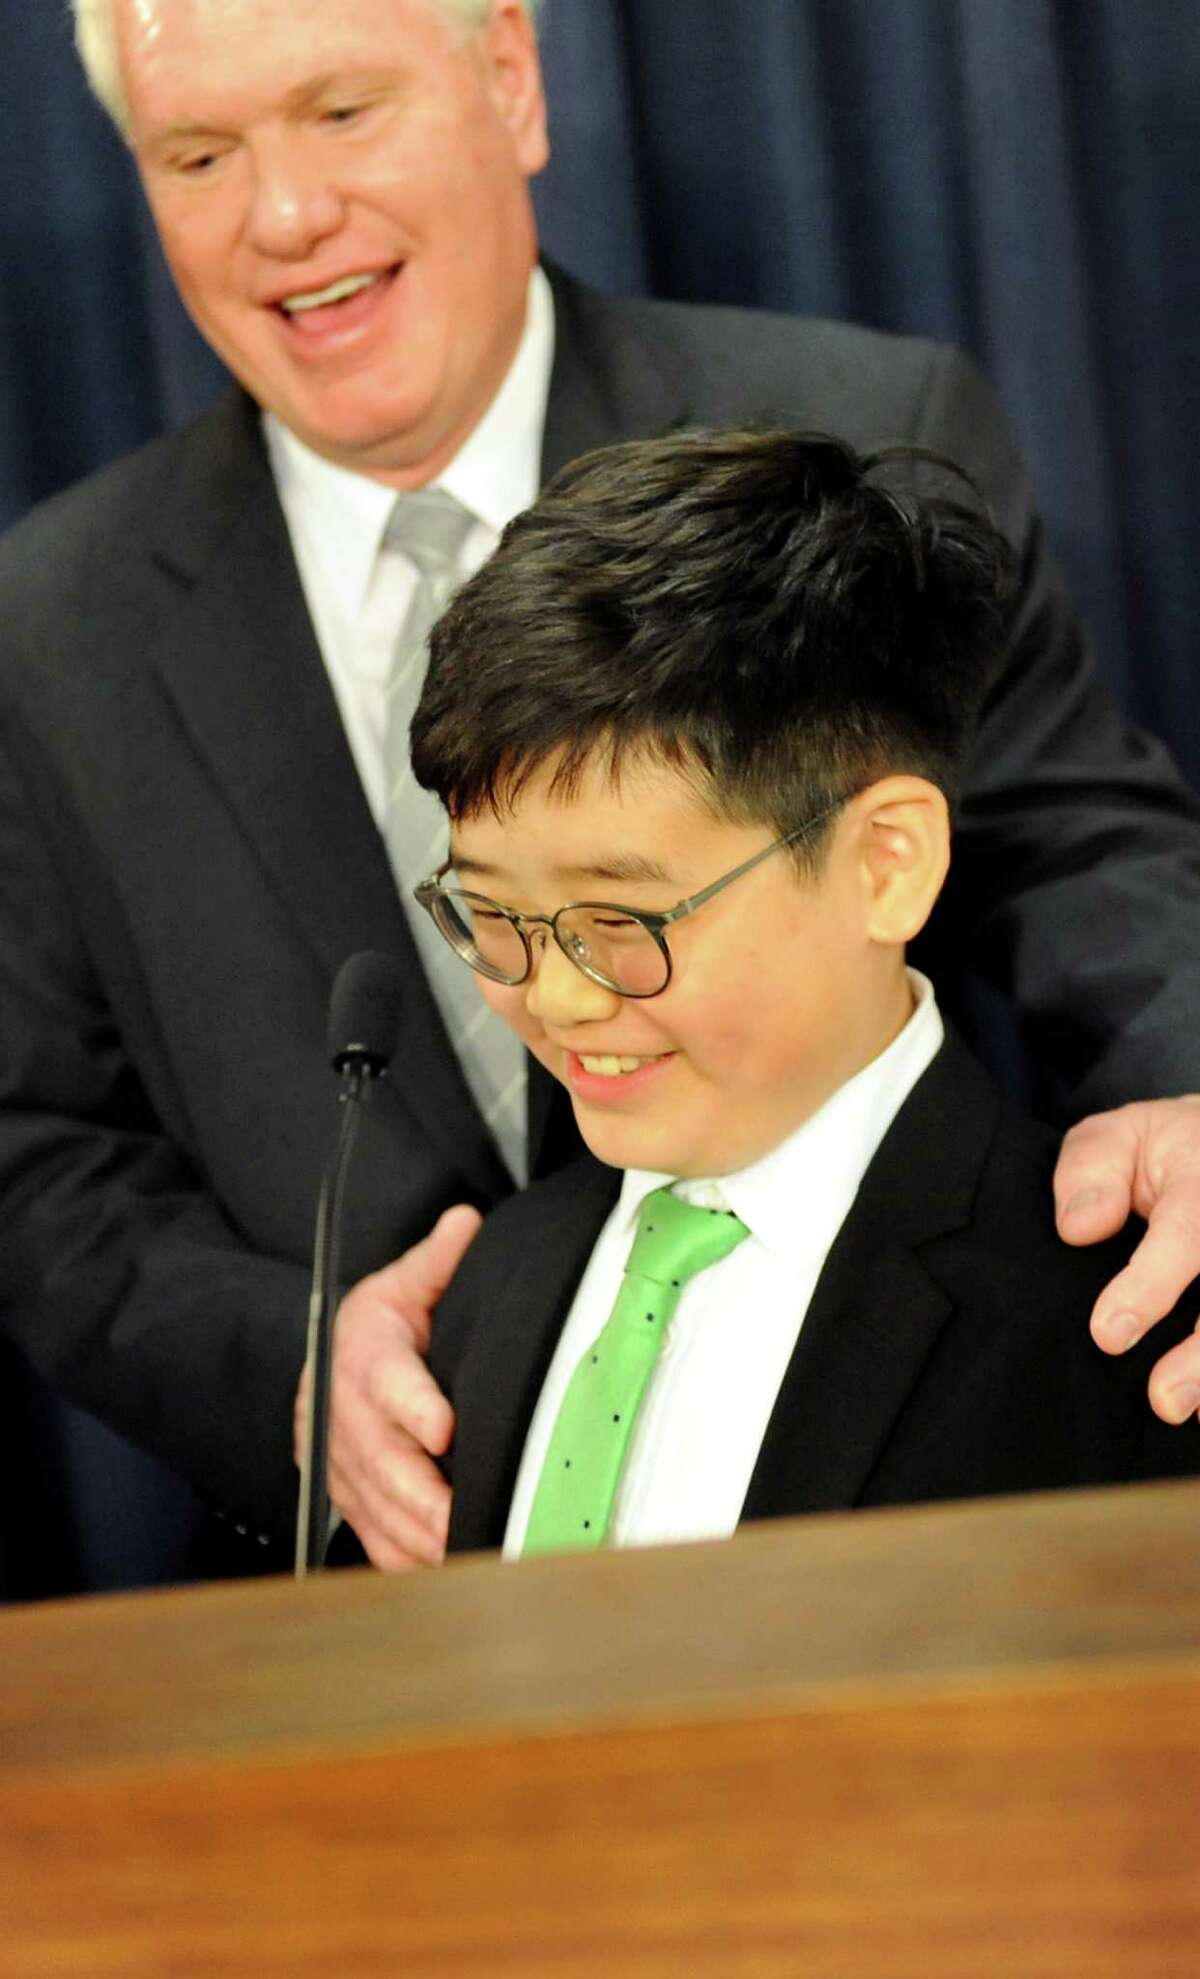 Eliot Seol , 10, of Queens takes the podium to talk about the Battery Recycling Bill at the insistence of Sen. Tony Avella on Wednesday, April 22, 2015, at the Capitol in Albany, N.Y. (Cindy Schultz / Times Union)